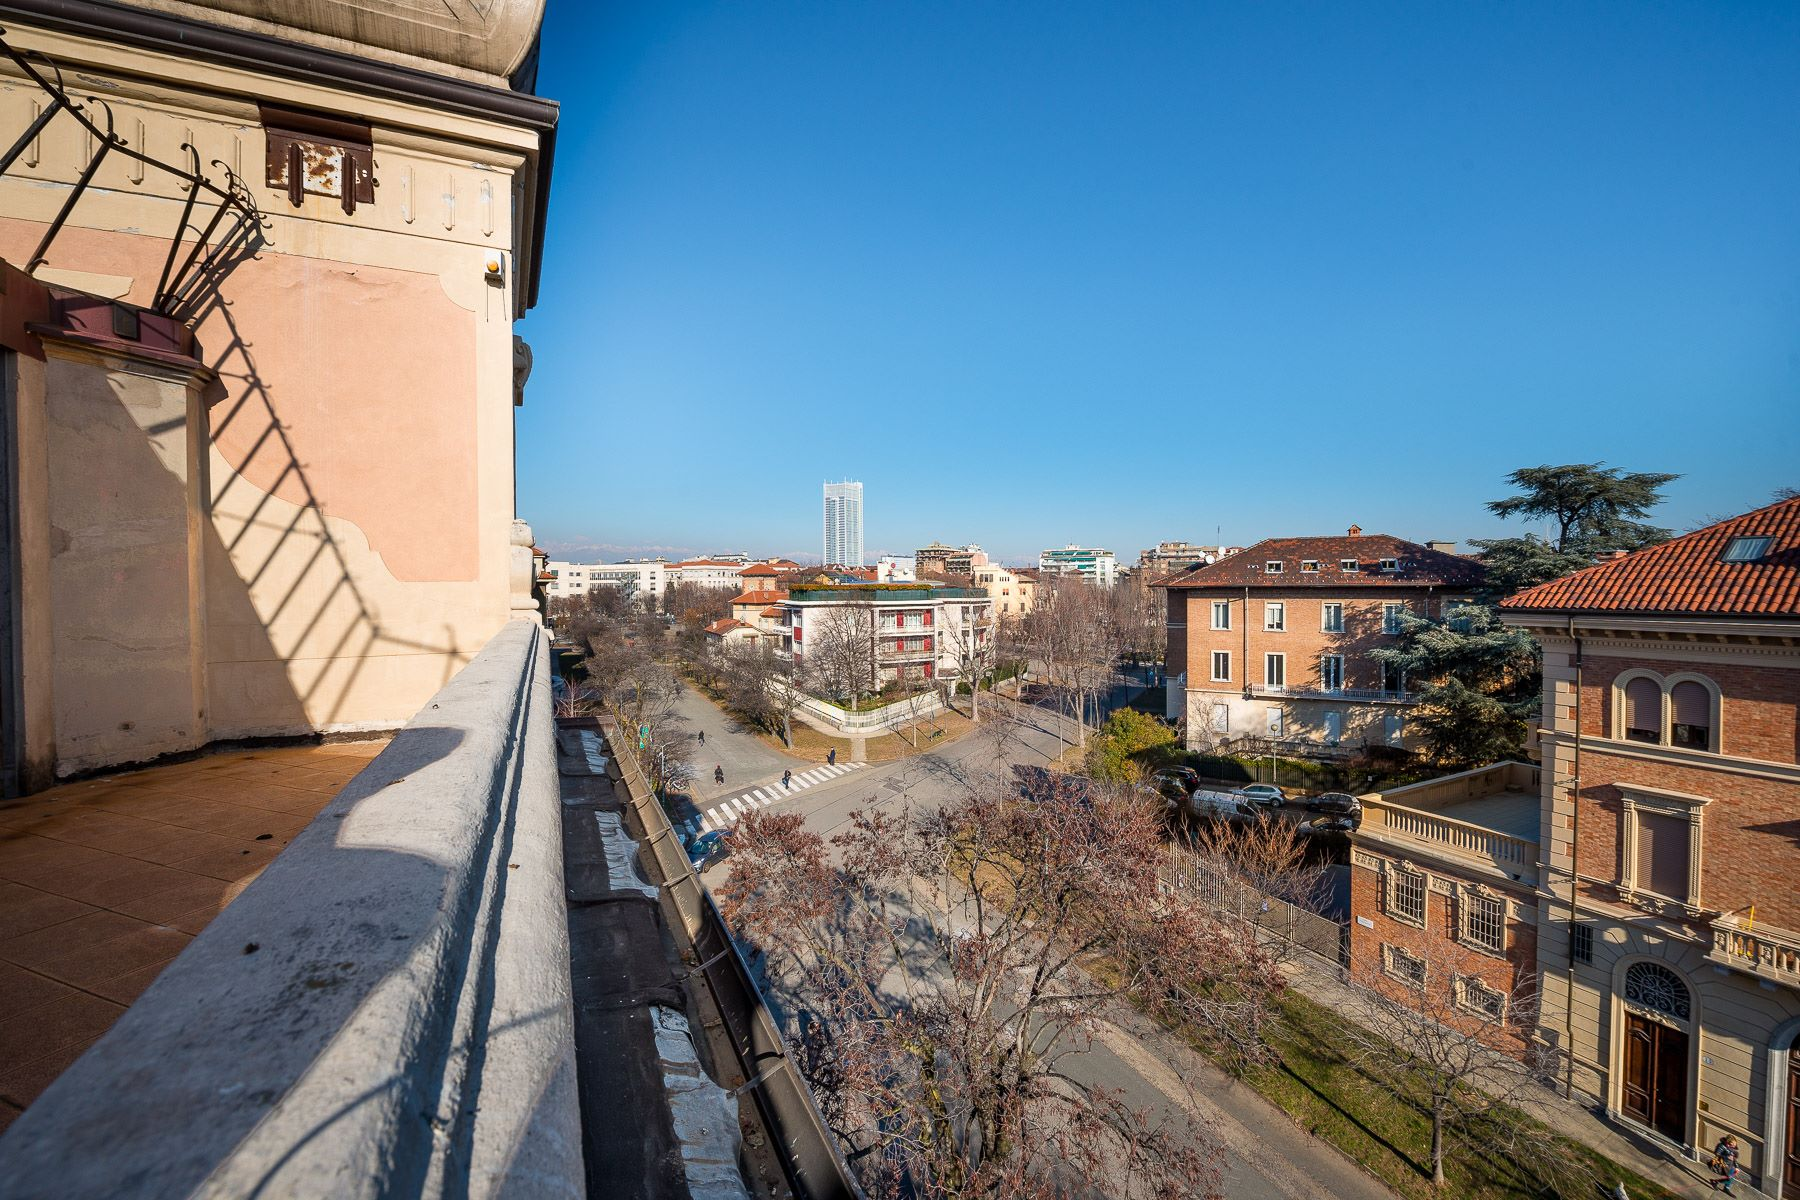 Additional photo for property listing at Prestigious apartment in the heart of Turin Corso Trento Torino, Turin 10128 Italy